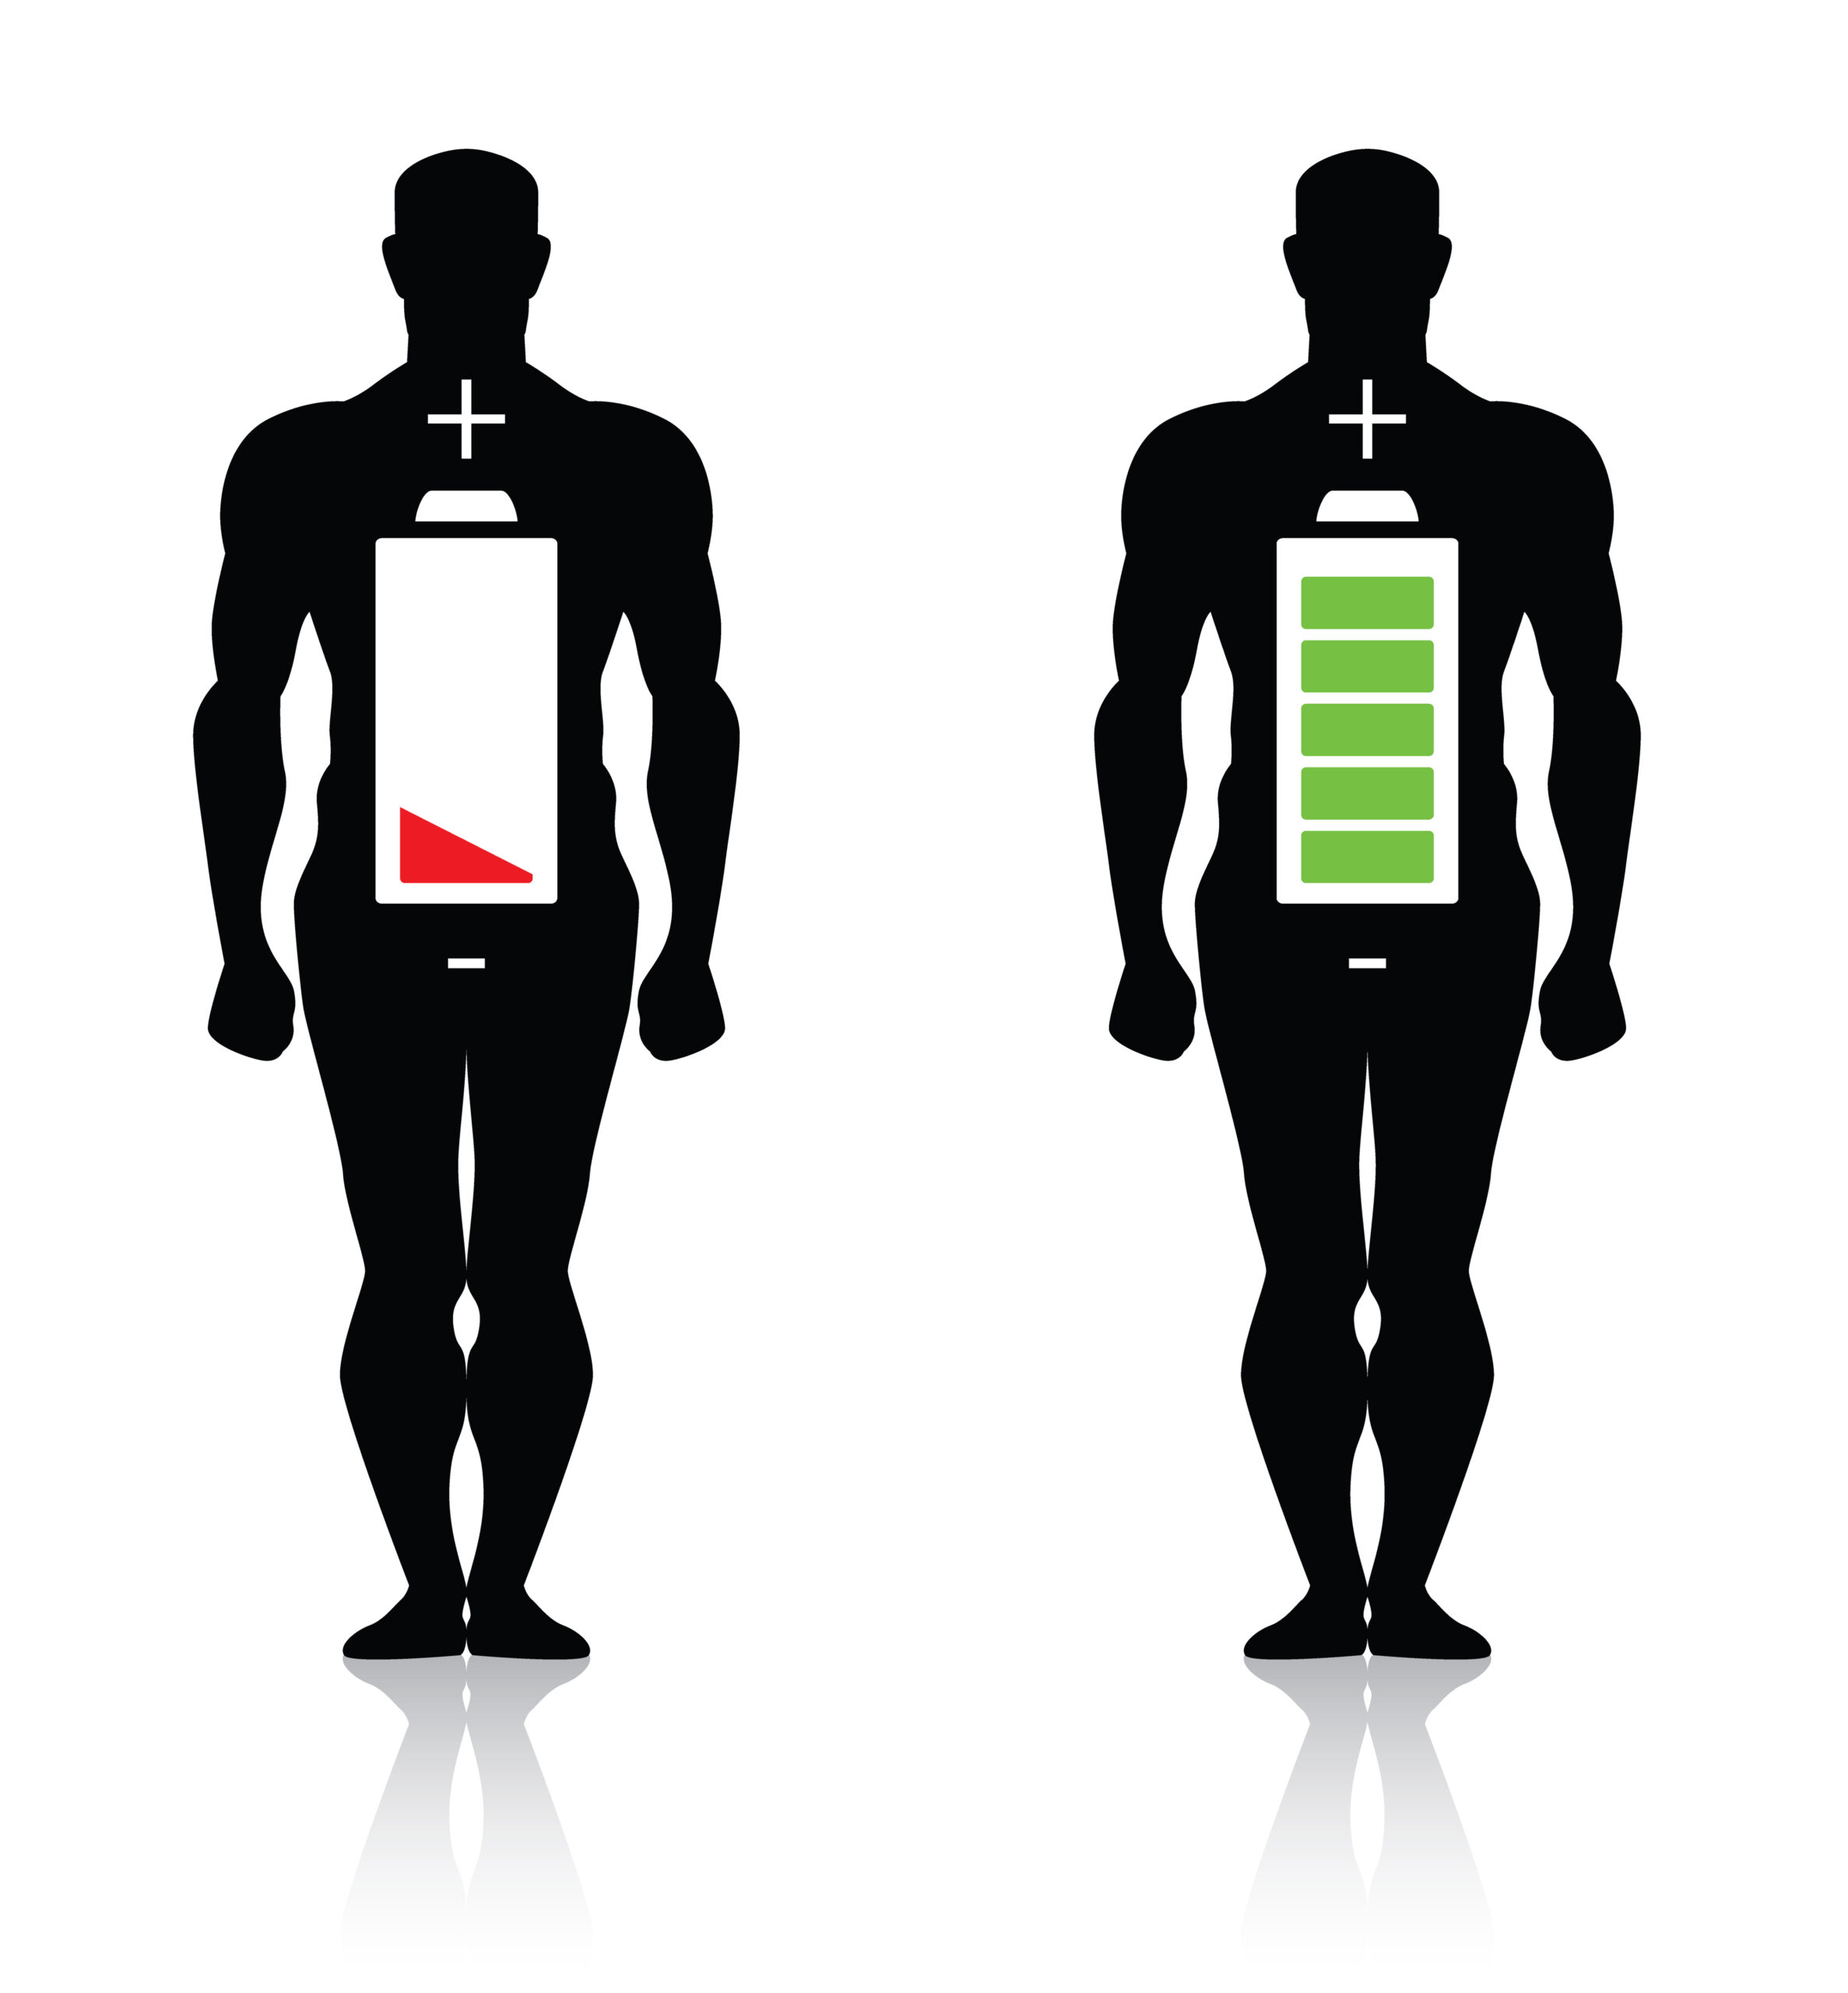 Our body has a battery